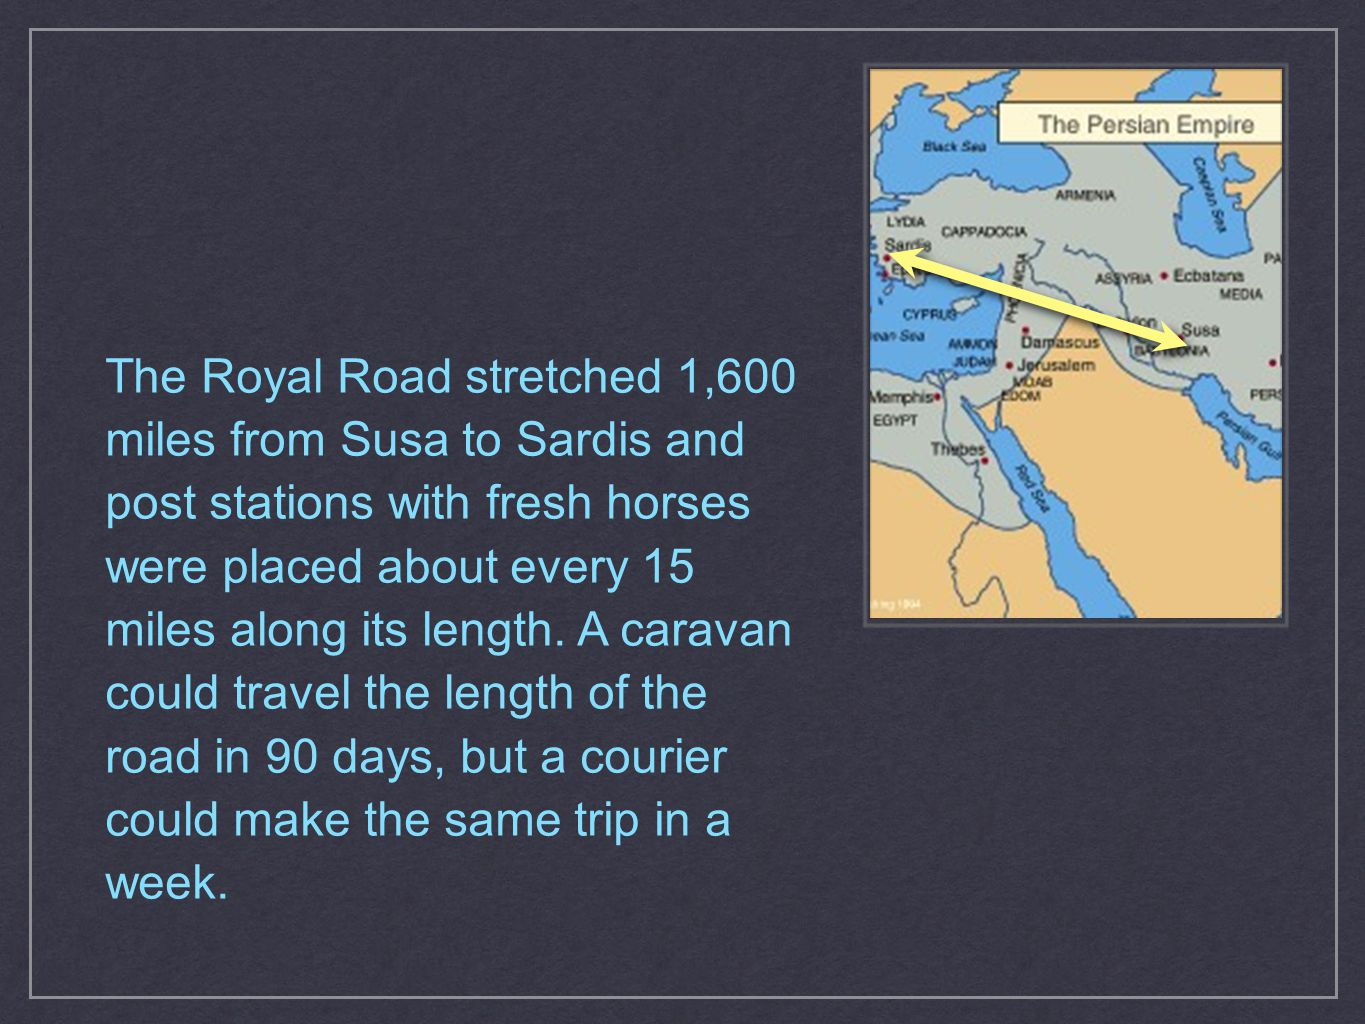 The Royal Road stretched 1,600 miles from Susa to Sardis and post stations with fresh horses were placed about every 15 miles along its length. A cara